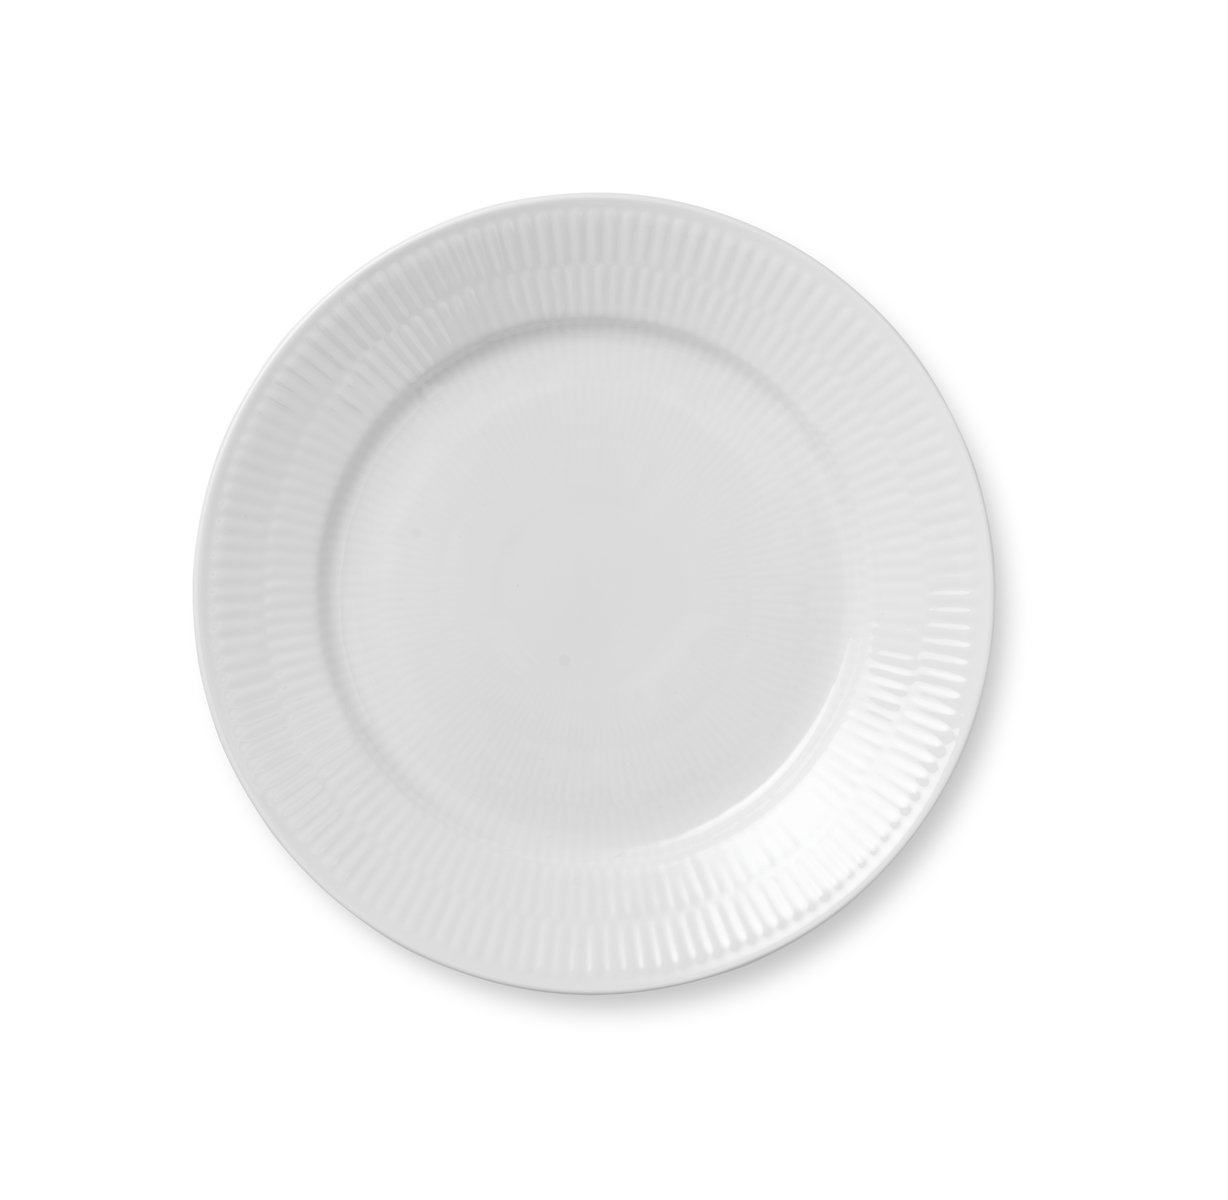 Royal Copenhagen, White Fluted Salad Plate 8.75""